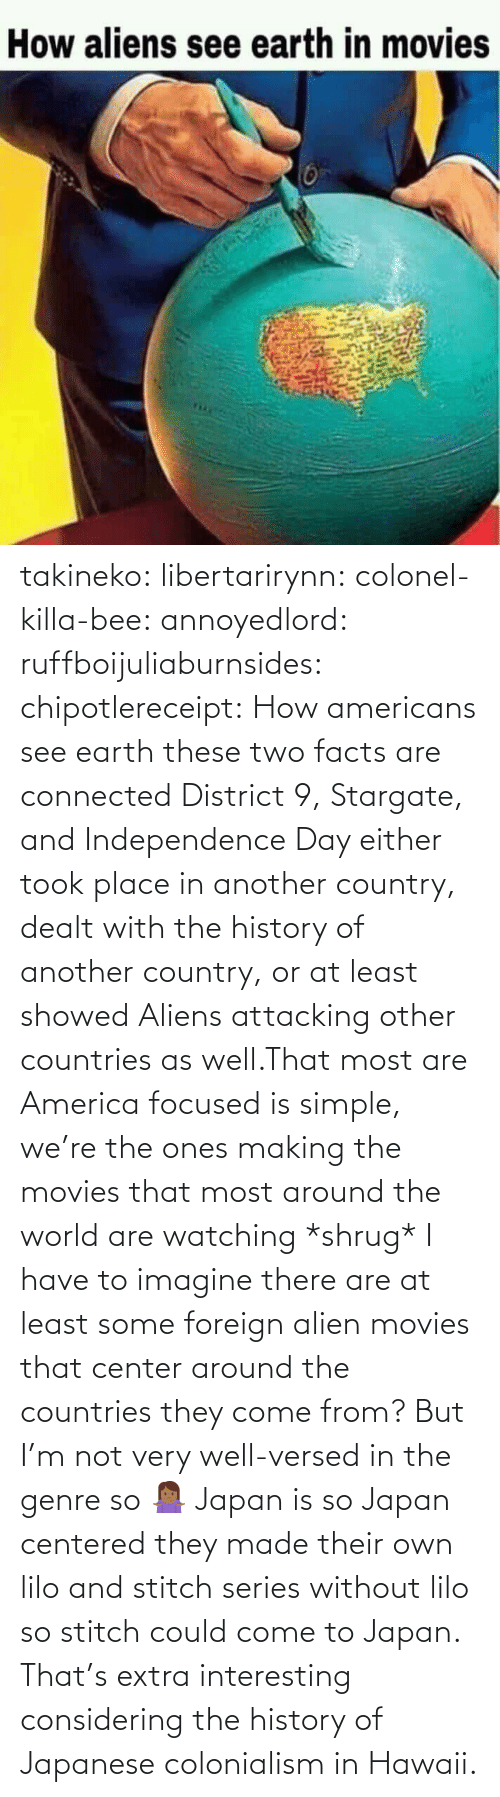 extra: takineko:  libertarirynn:  colonel-killa-bee:  annoyedlord: ruffboijuliaburnsides:  chipotlereceipt: How americans see earth these two facts are connected     District 9, Stargate, and Independence Day either took place in another country, dealt with the history of another country, or at least showed Aliens attacking other countries as well.That most are America focused is simple, we're the ones making the movies that most around the world are watching *shrug*   I have to imagine there are at least some foreign alien movies that center around the countries they come from? But I'm not very well-versed in the genre so 🤷🏾‍♀️   Japan is so Japan centered they made their own lilo and stitch series without lilo so stitch could come to Japan.    That's extra interesting considering the history of Japanese colonialism in Hawaii.